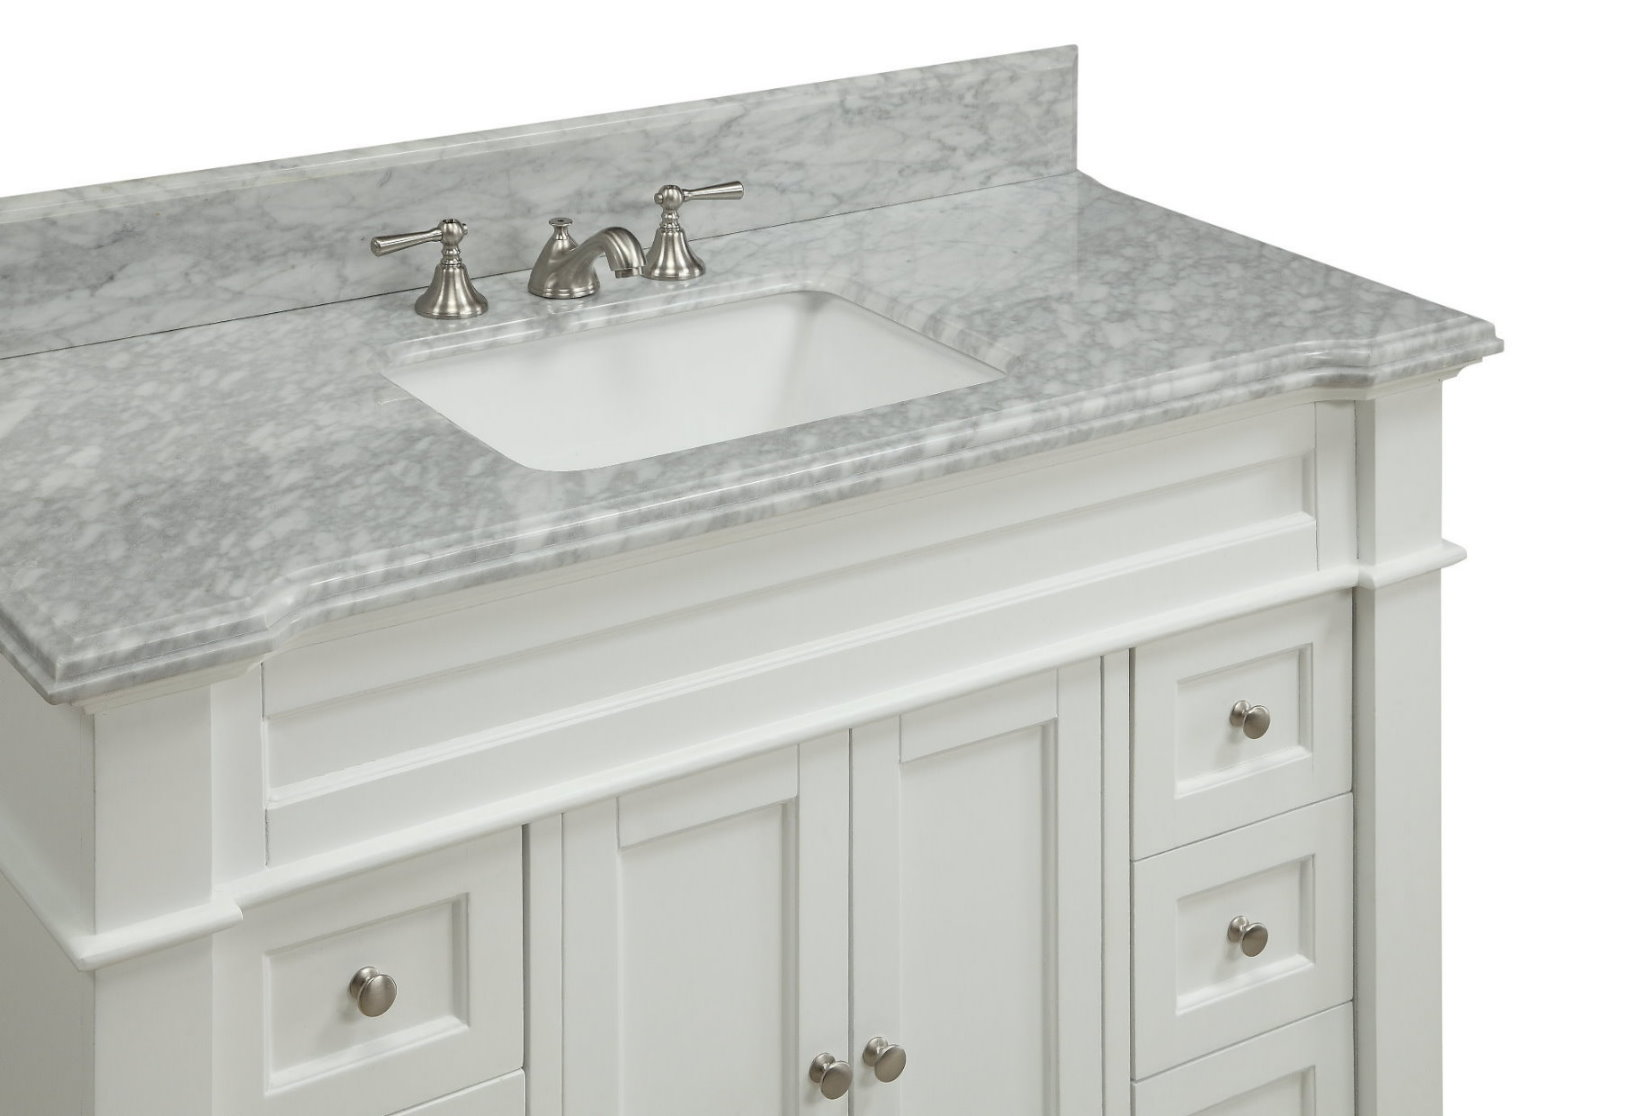 white glass trough fiberglass vanity design with two top sinks bathroom made decor sink double ideas and counter mount furniture floating inch ceramic